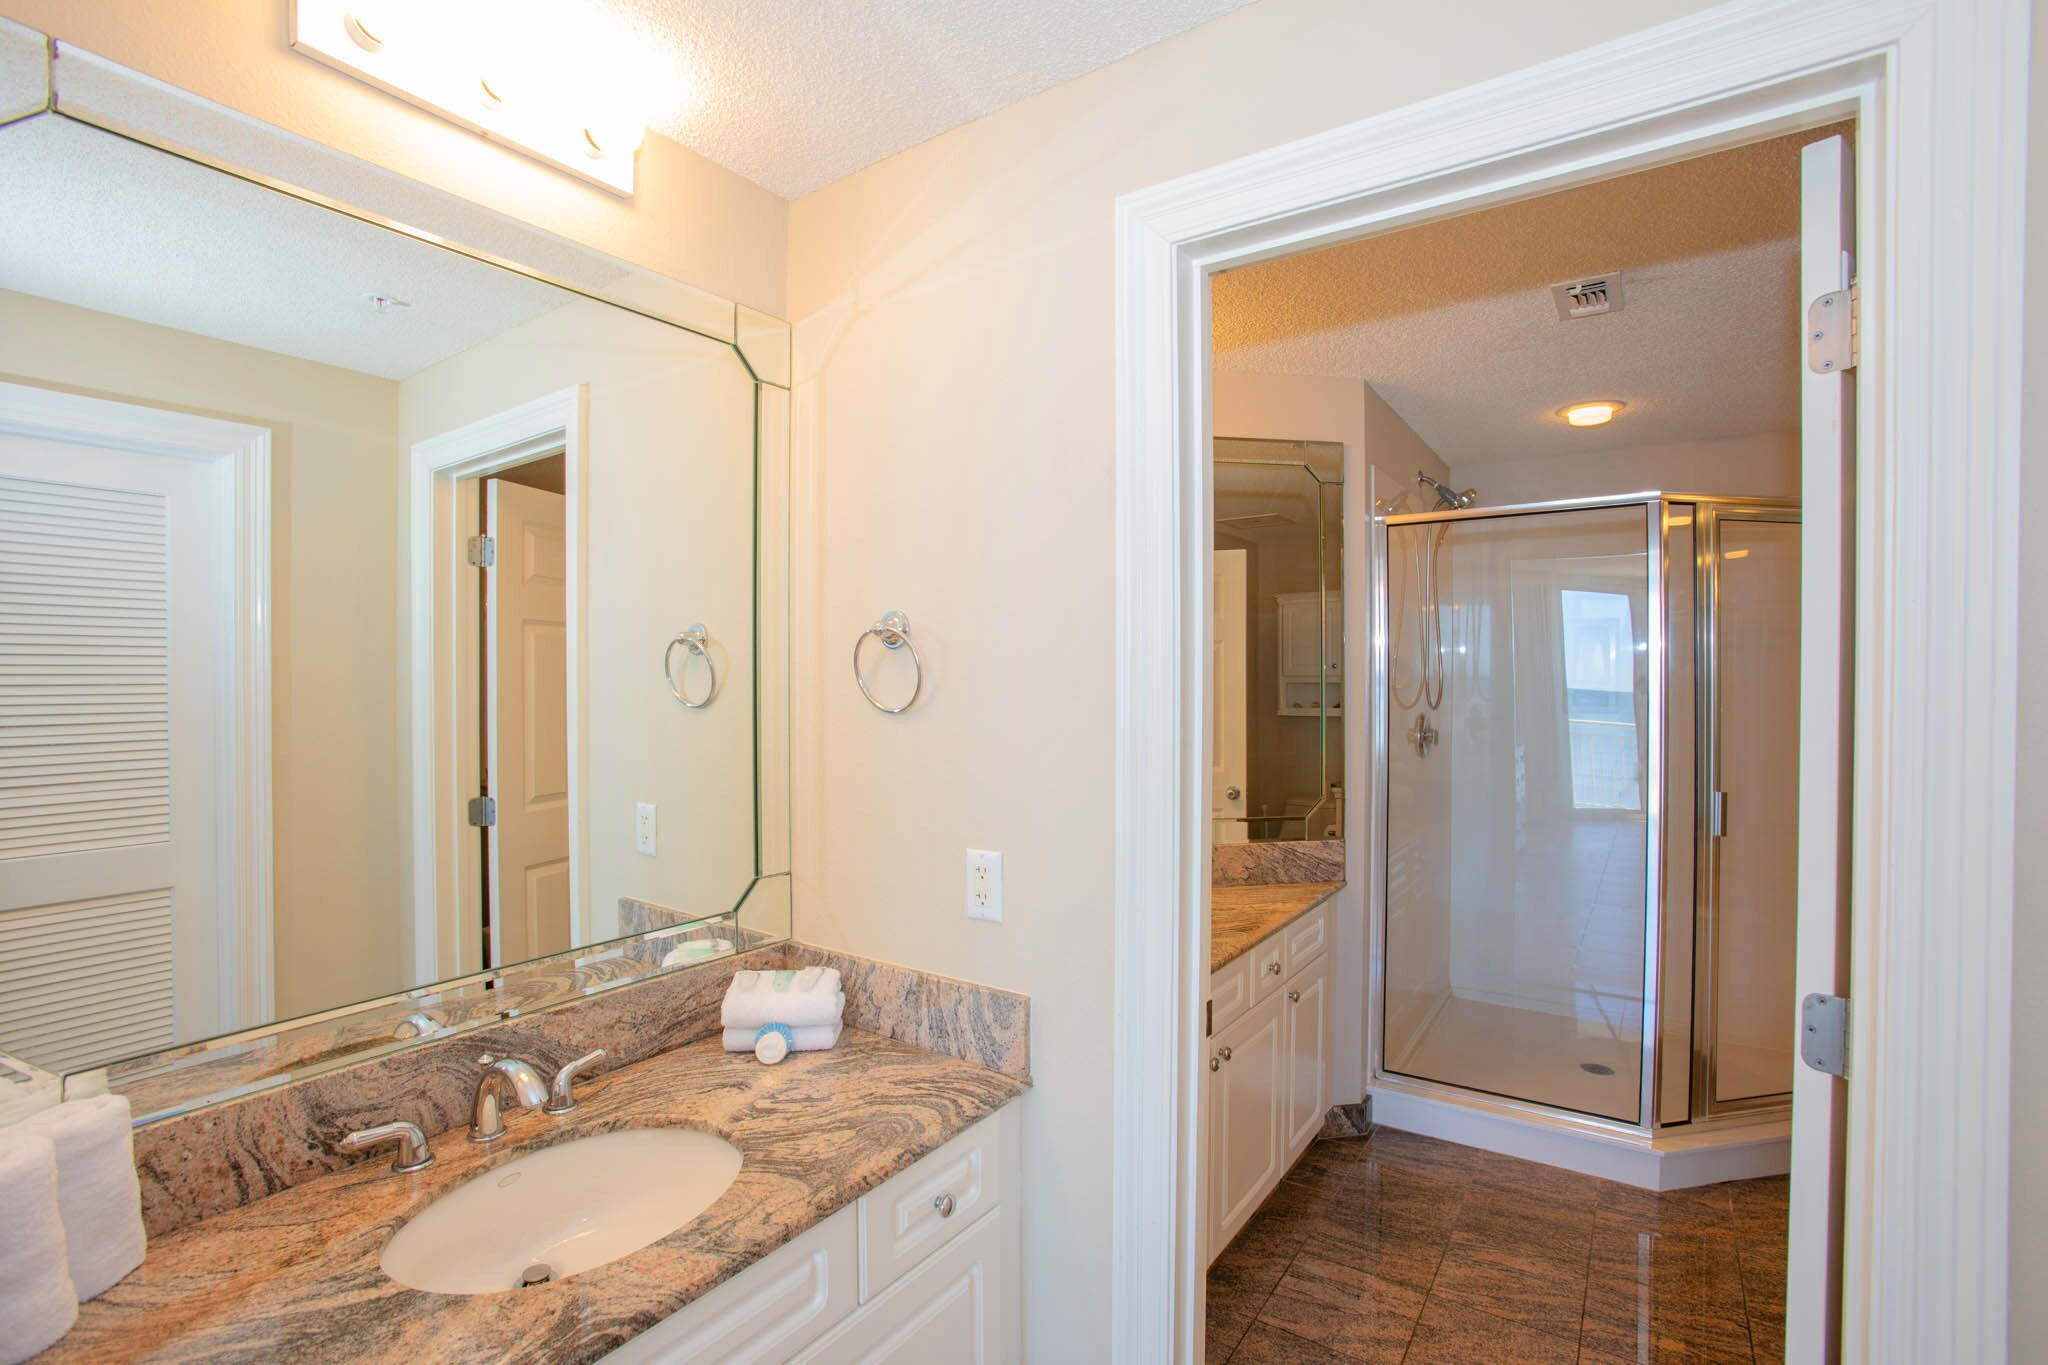 The Pearl of Navarre #504 Condo rental in The Pearl of Navarre Beach in Navarre Florida - #14